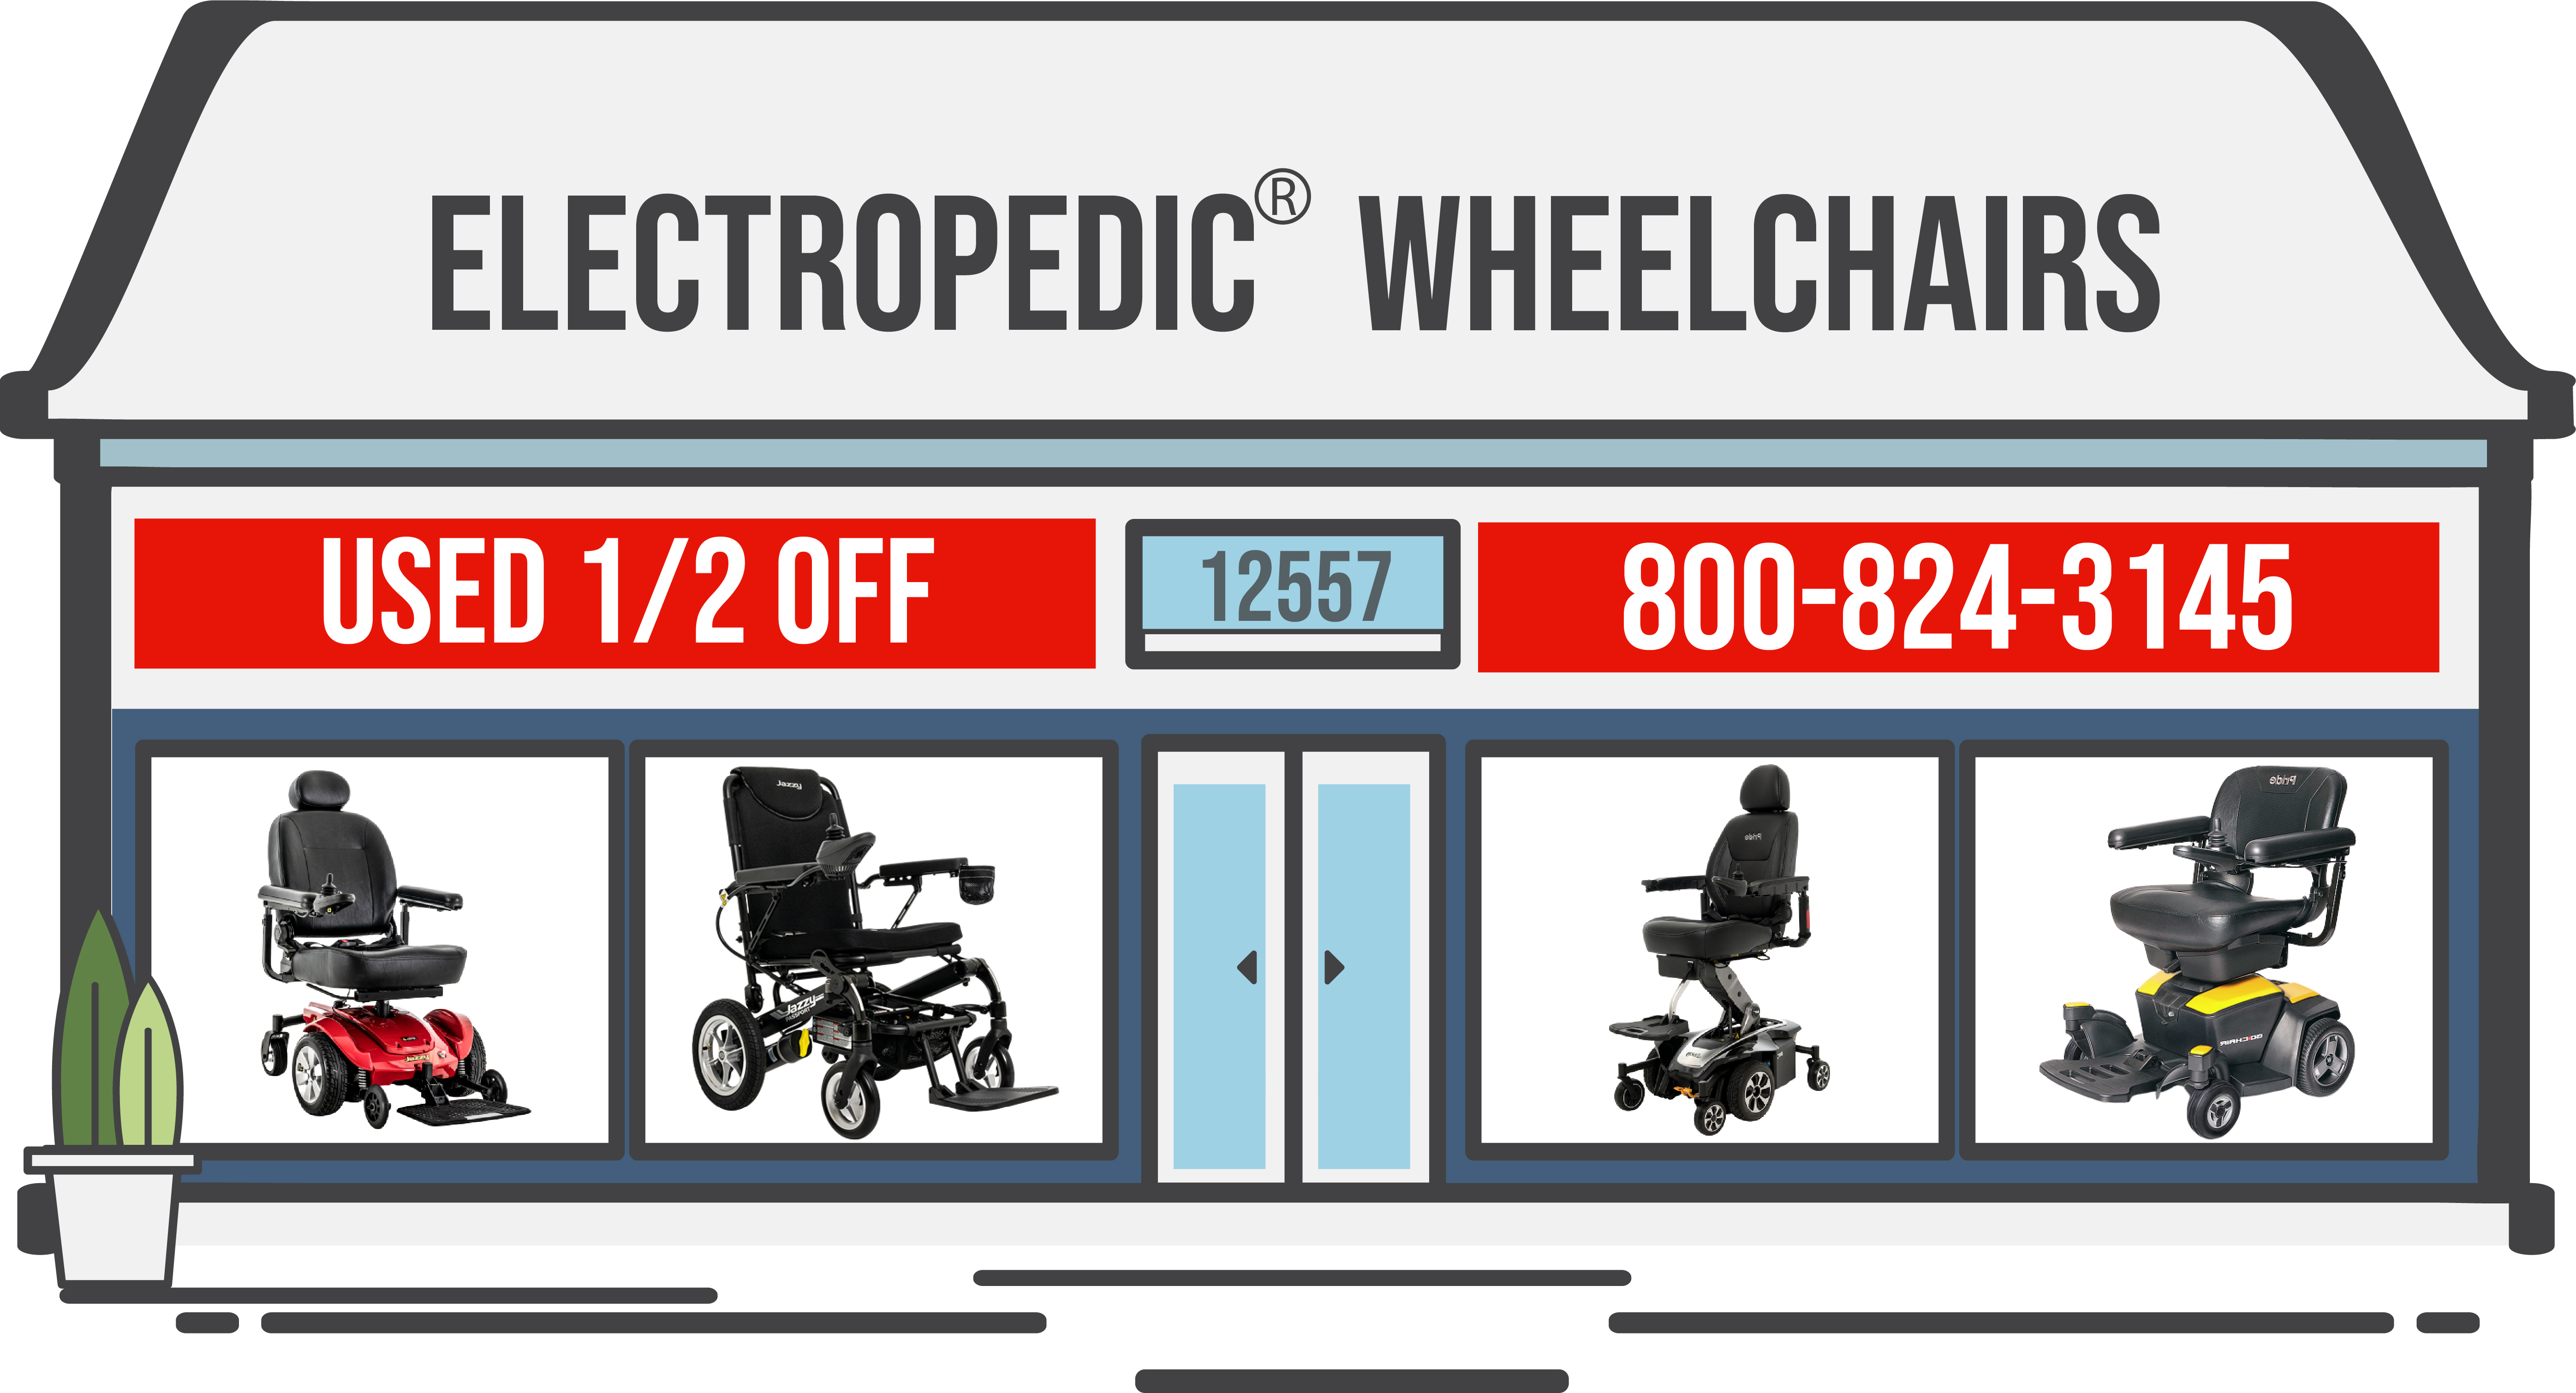 los angeles anaheim electric motorized wheelchair pride jazzy air passport gochair